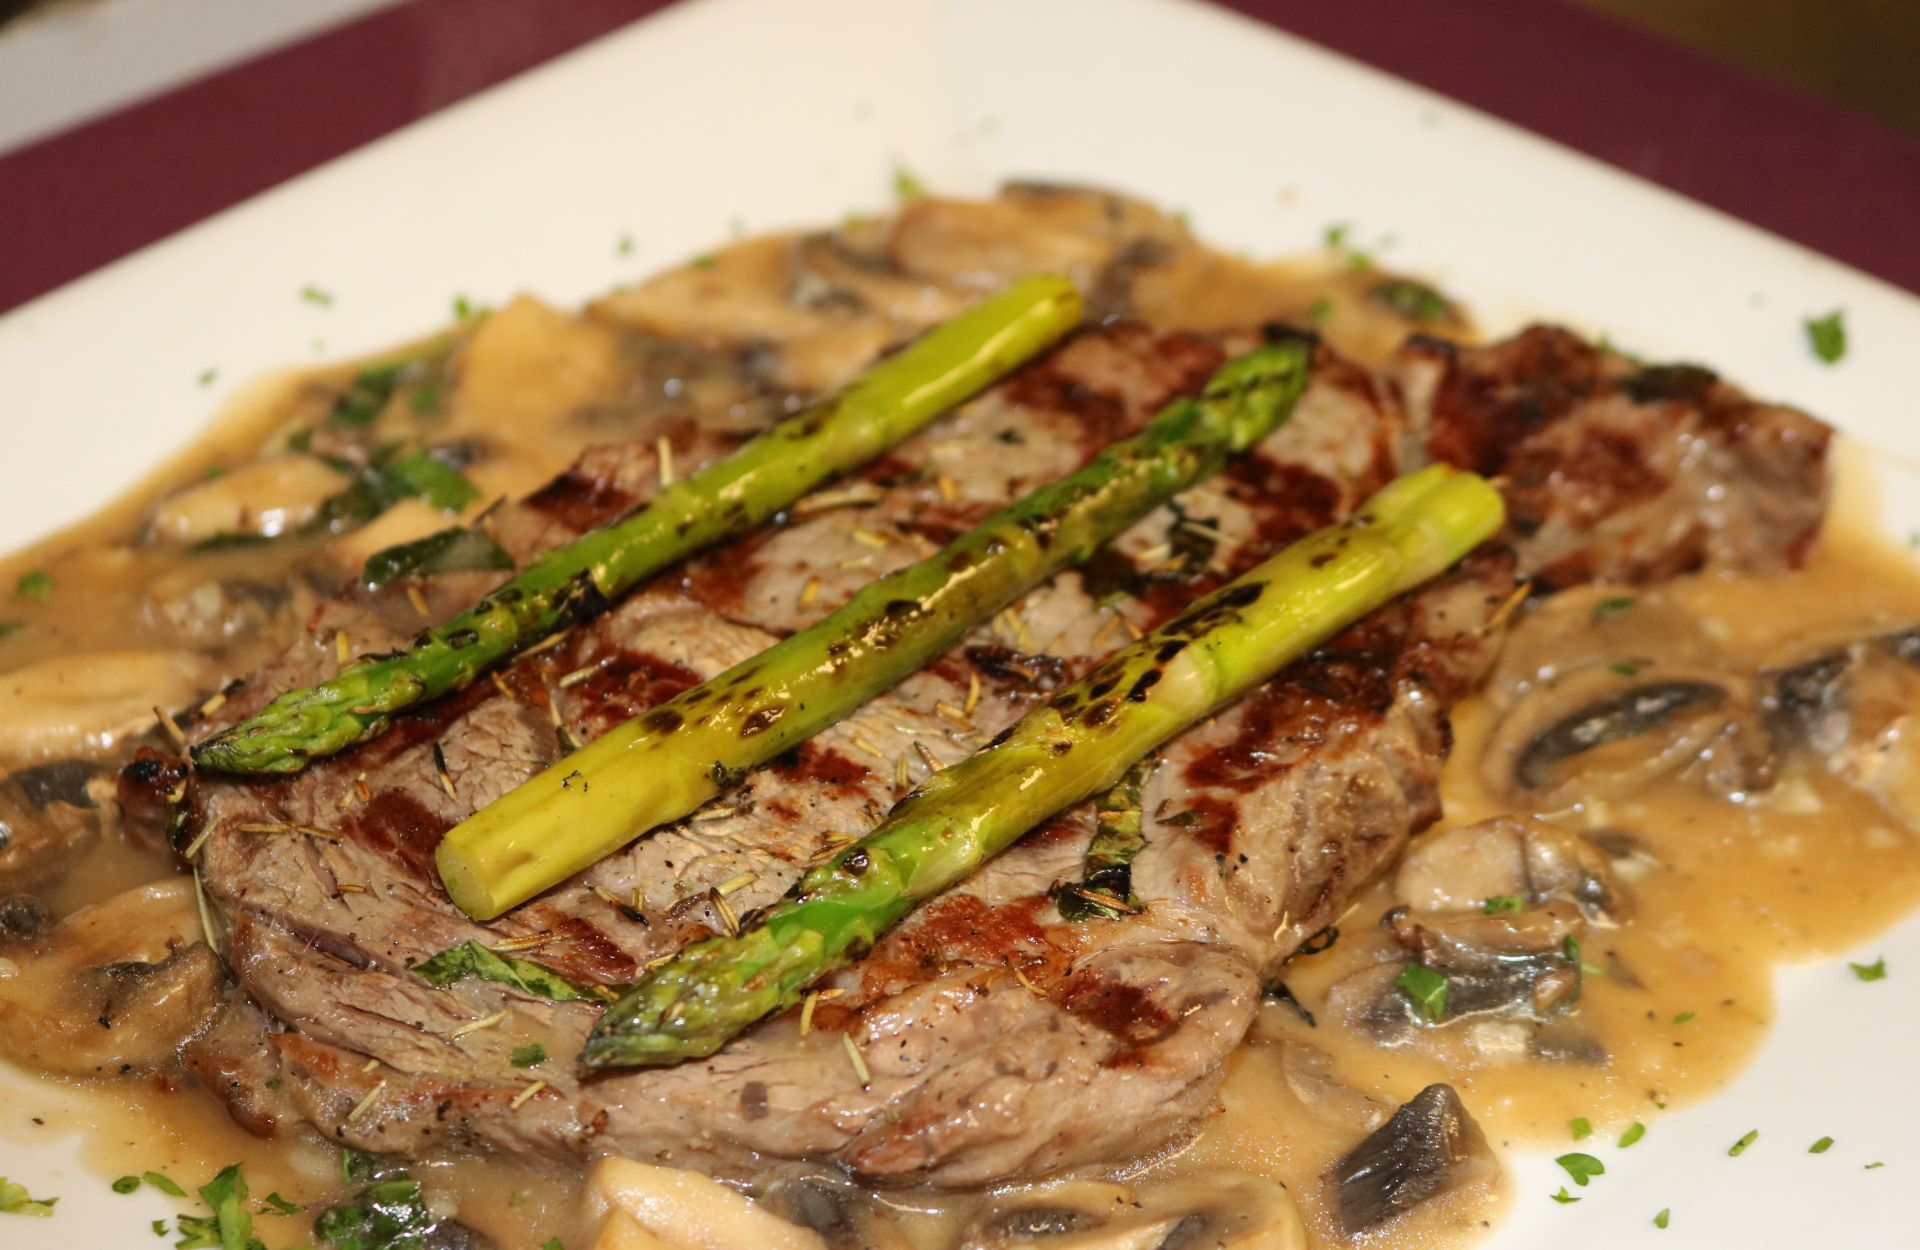 Rib-eye with grilled asparagus and mushroom in a Barolo wine reduction